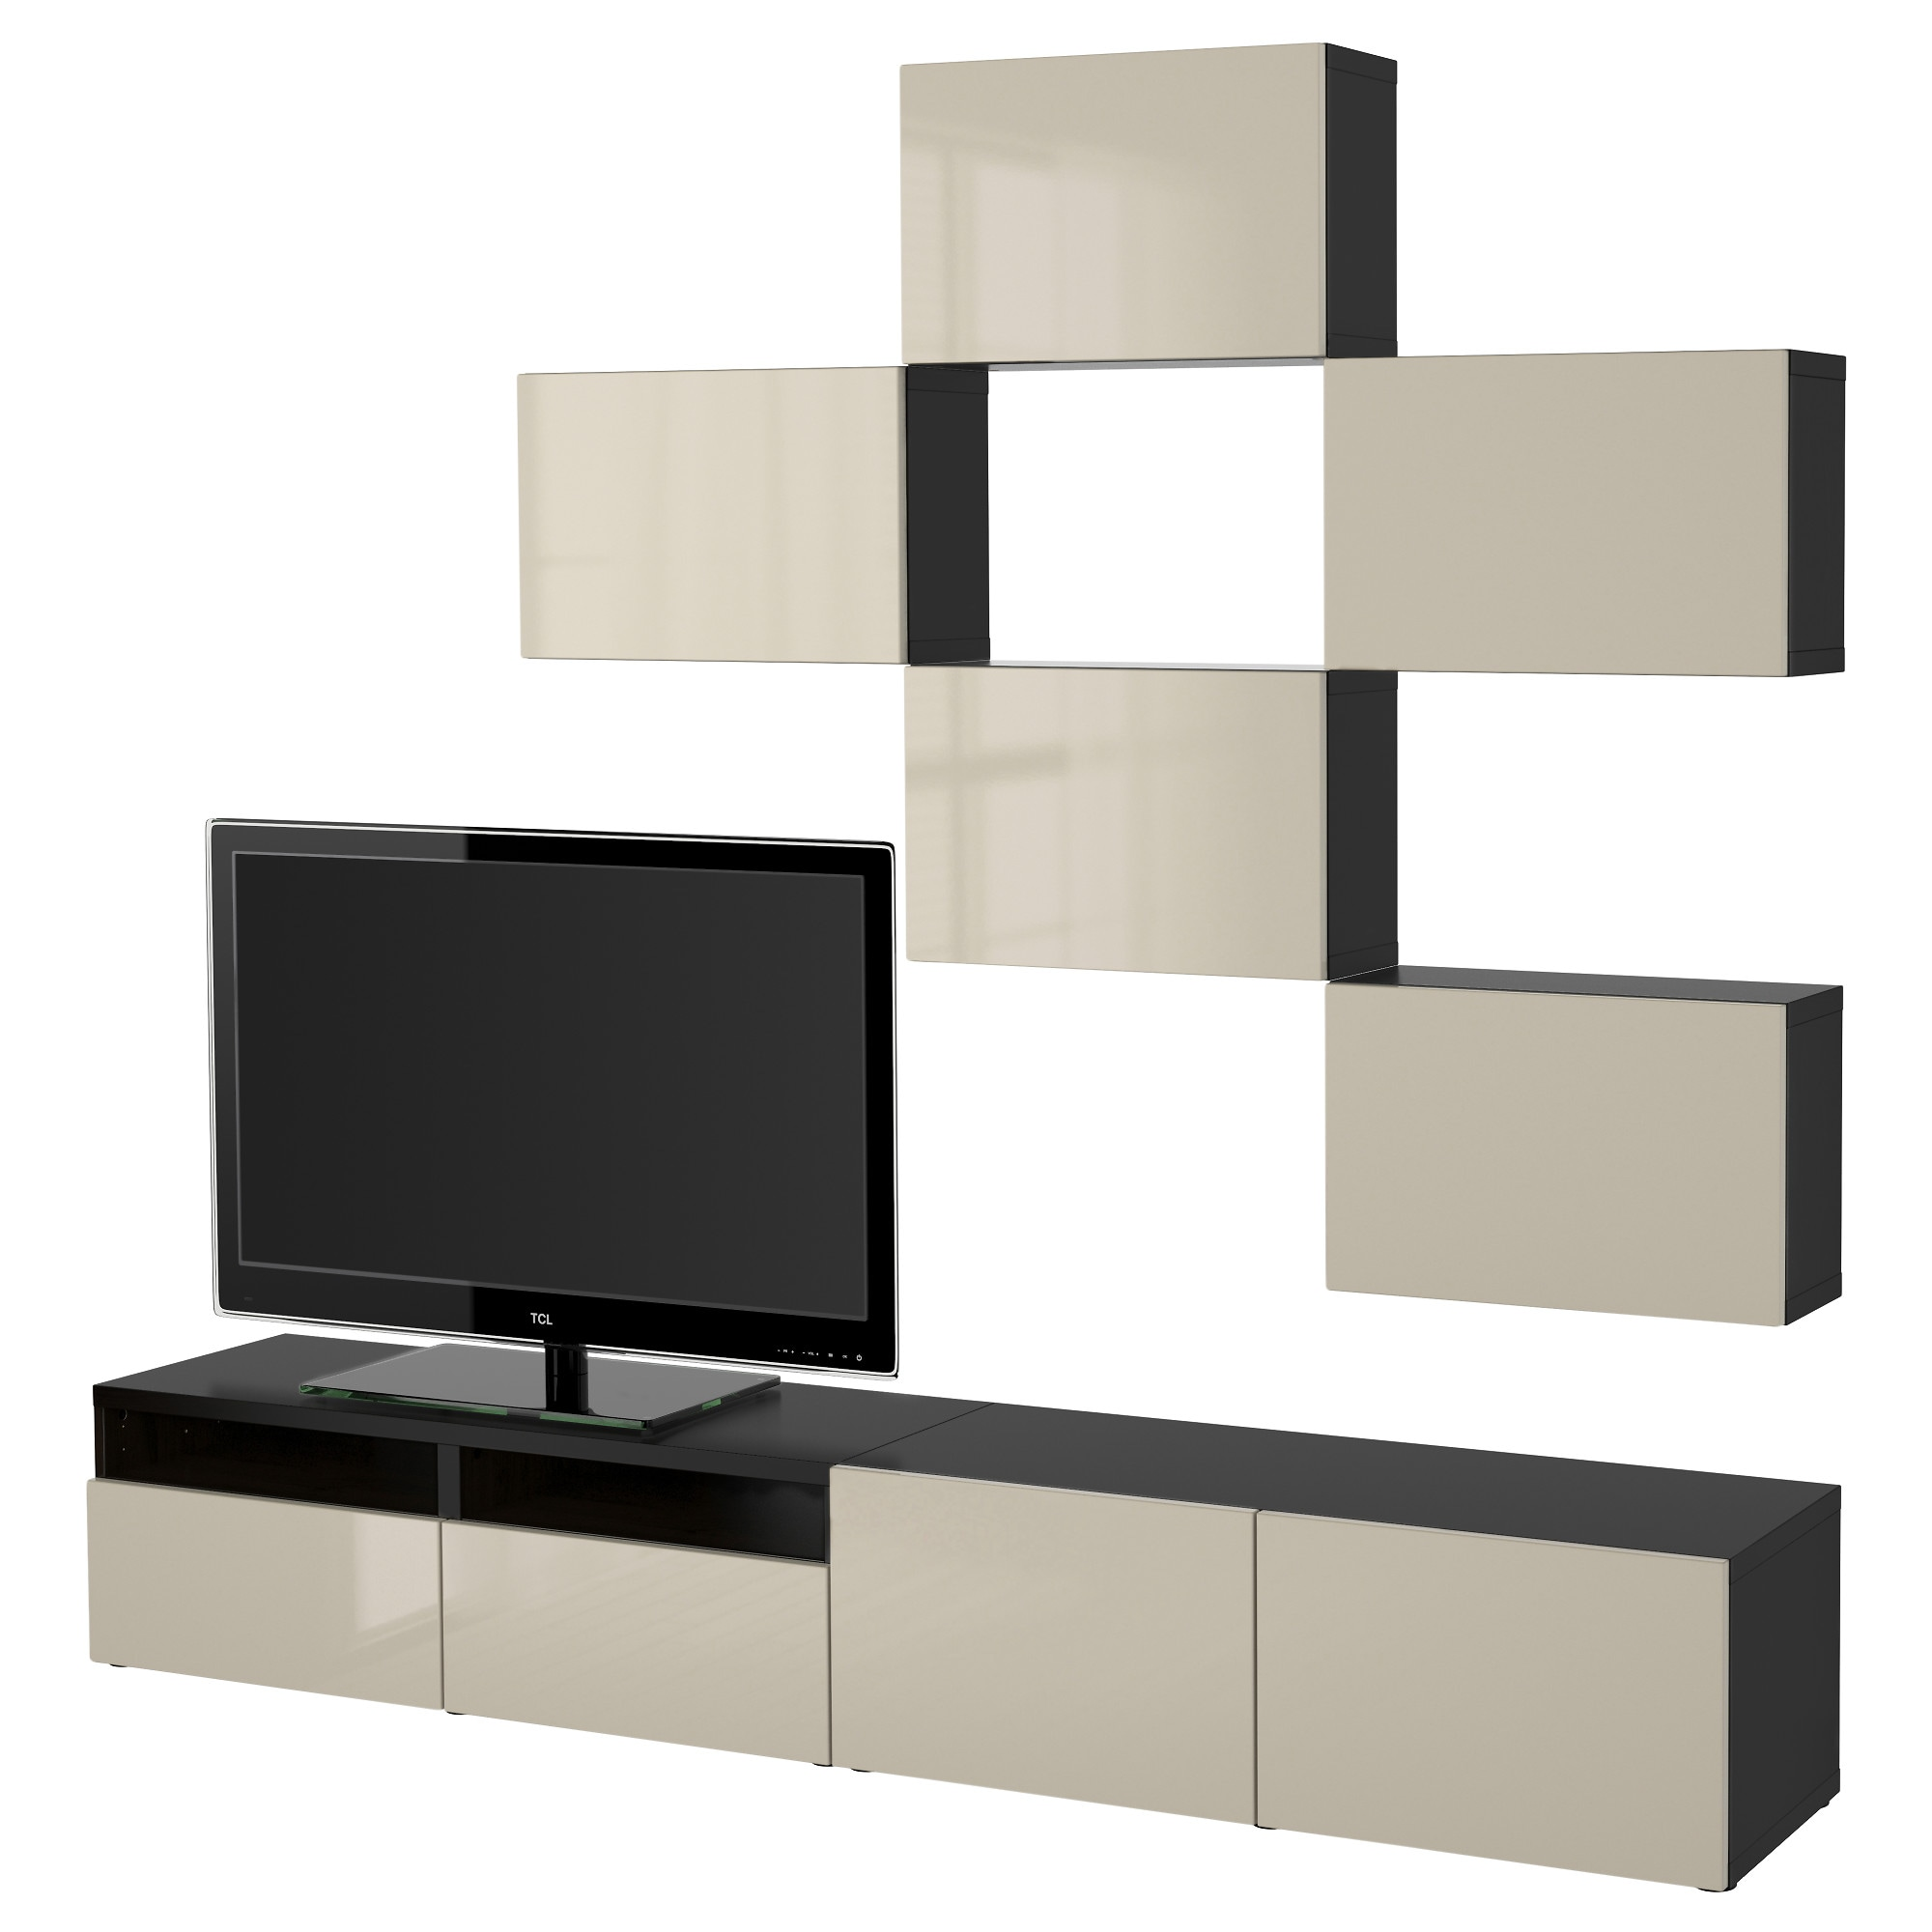 Meuble Tele Ikea Besta - Best Tv Storage Combination Black Brown Selsviken High Gloss [mjhdah]http://www.ikea.com/PIAimages/0415224_PE574320_S5.JPG